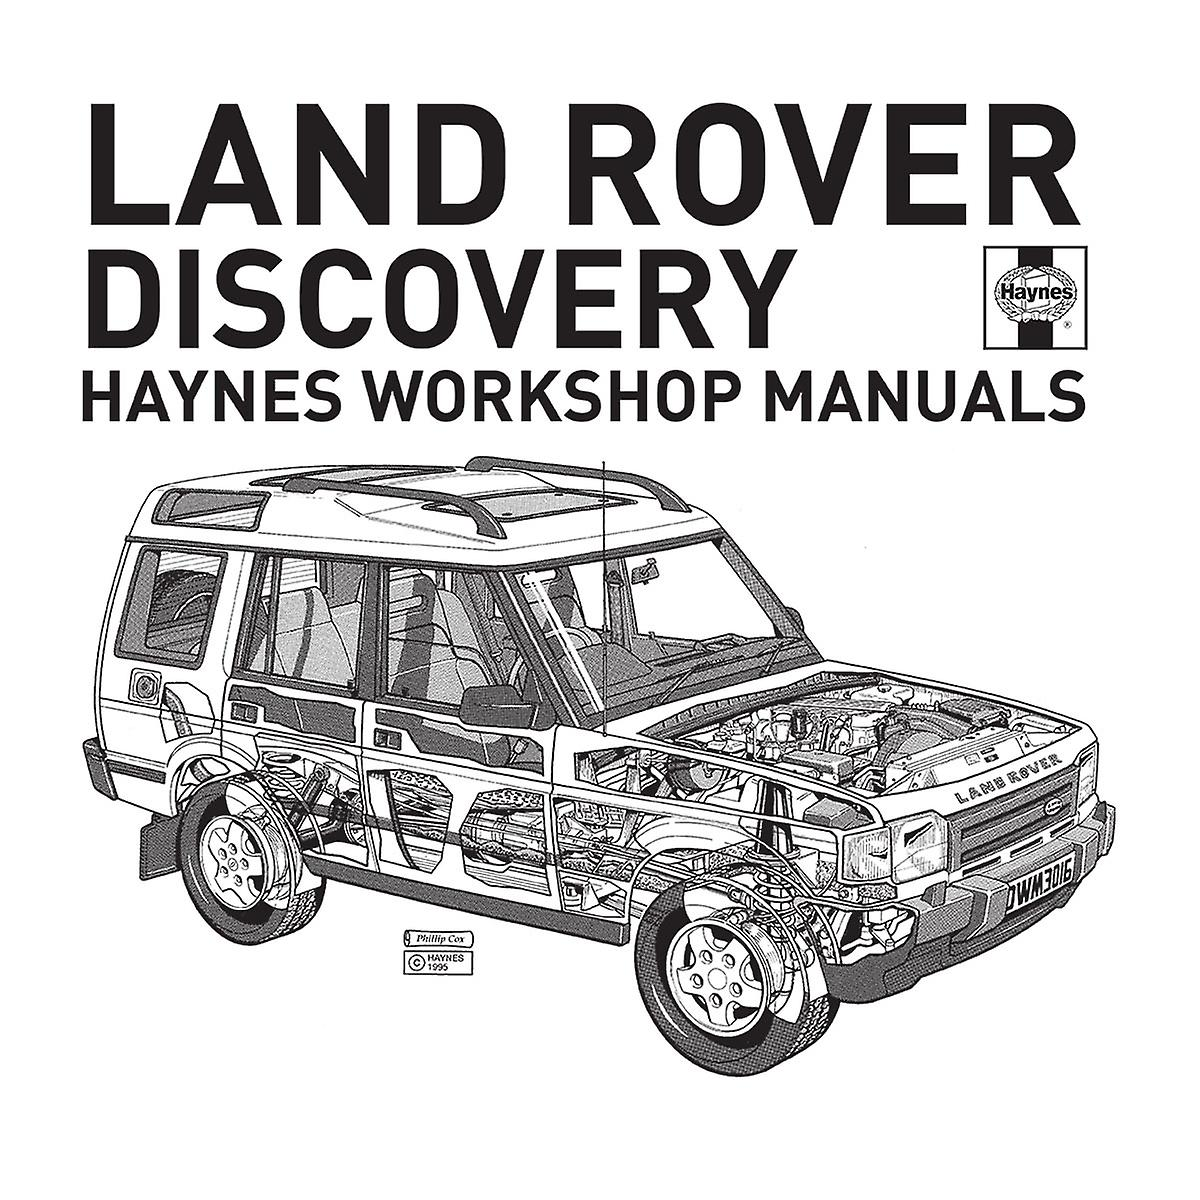 Haynes Workshop Manual 3016 Land Rover Discovery Black